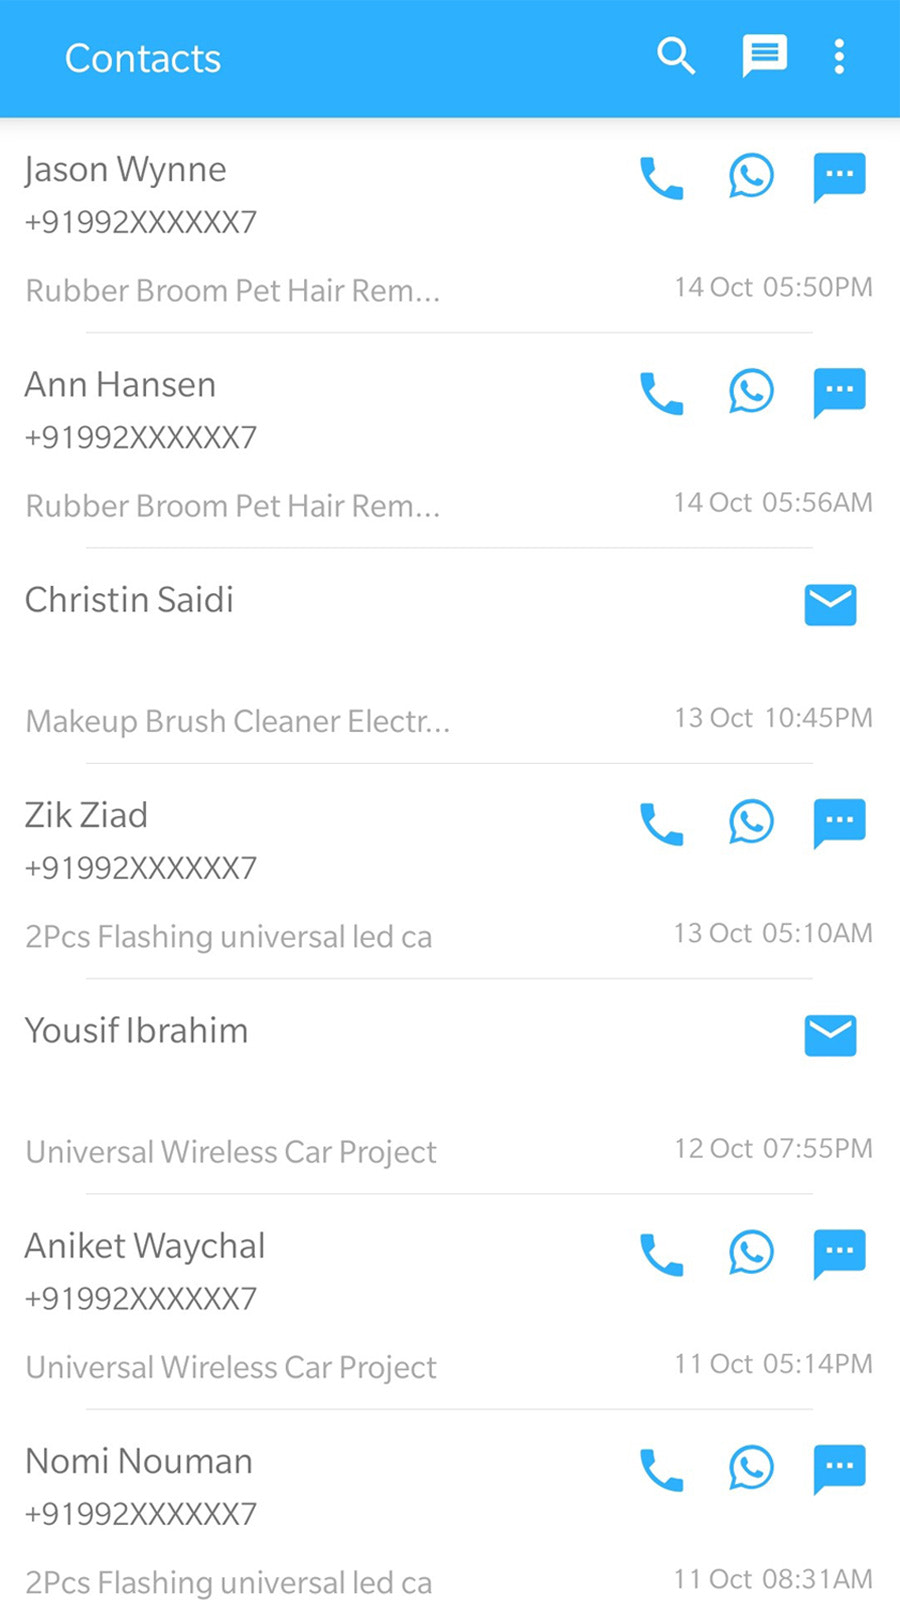 Android app for manually contacting Abandoned Cart & Customers